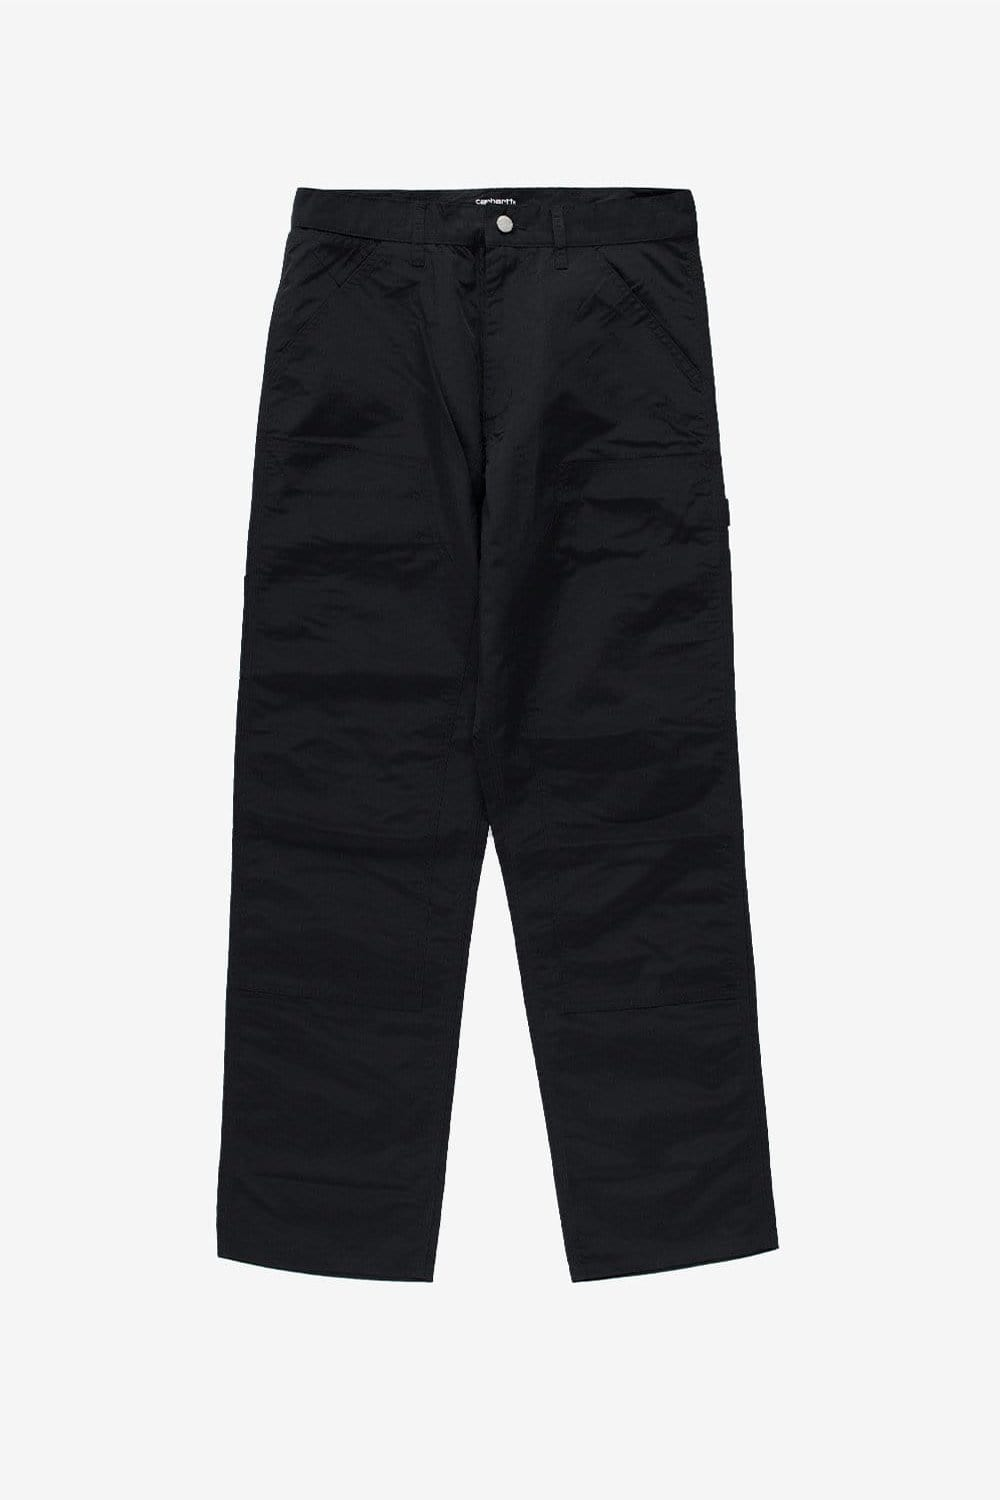 Carhartt WIP Apparel Carhartt WIP x Pop Trading Company Double Knee Pant